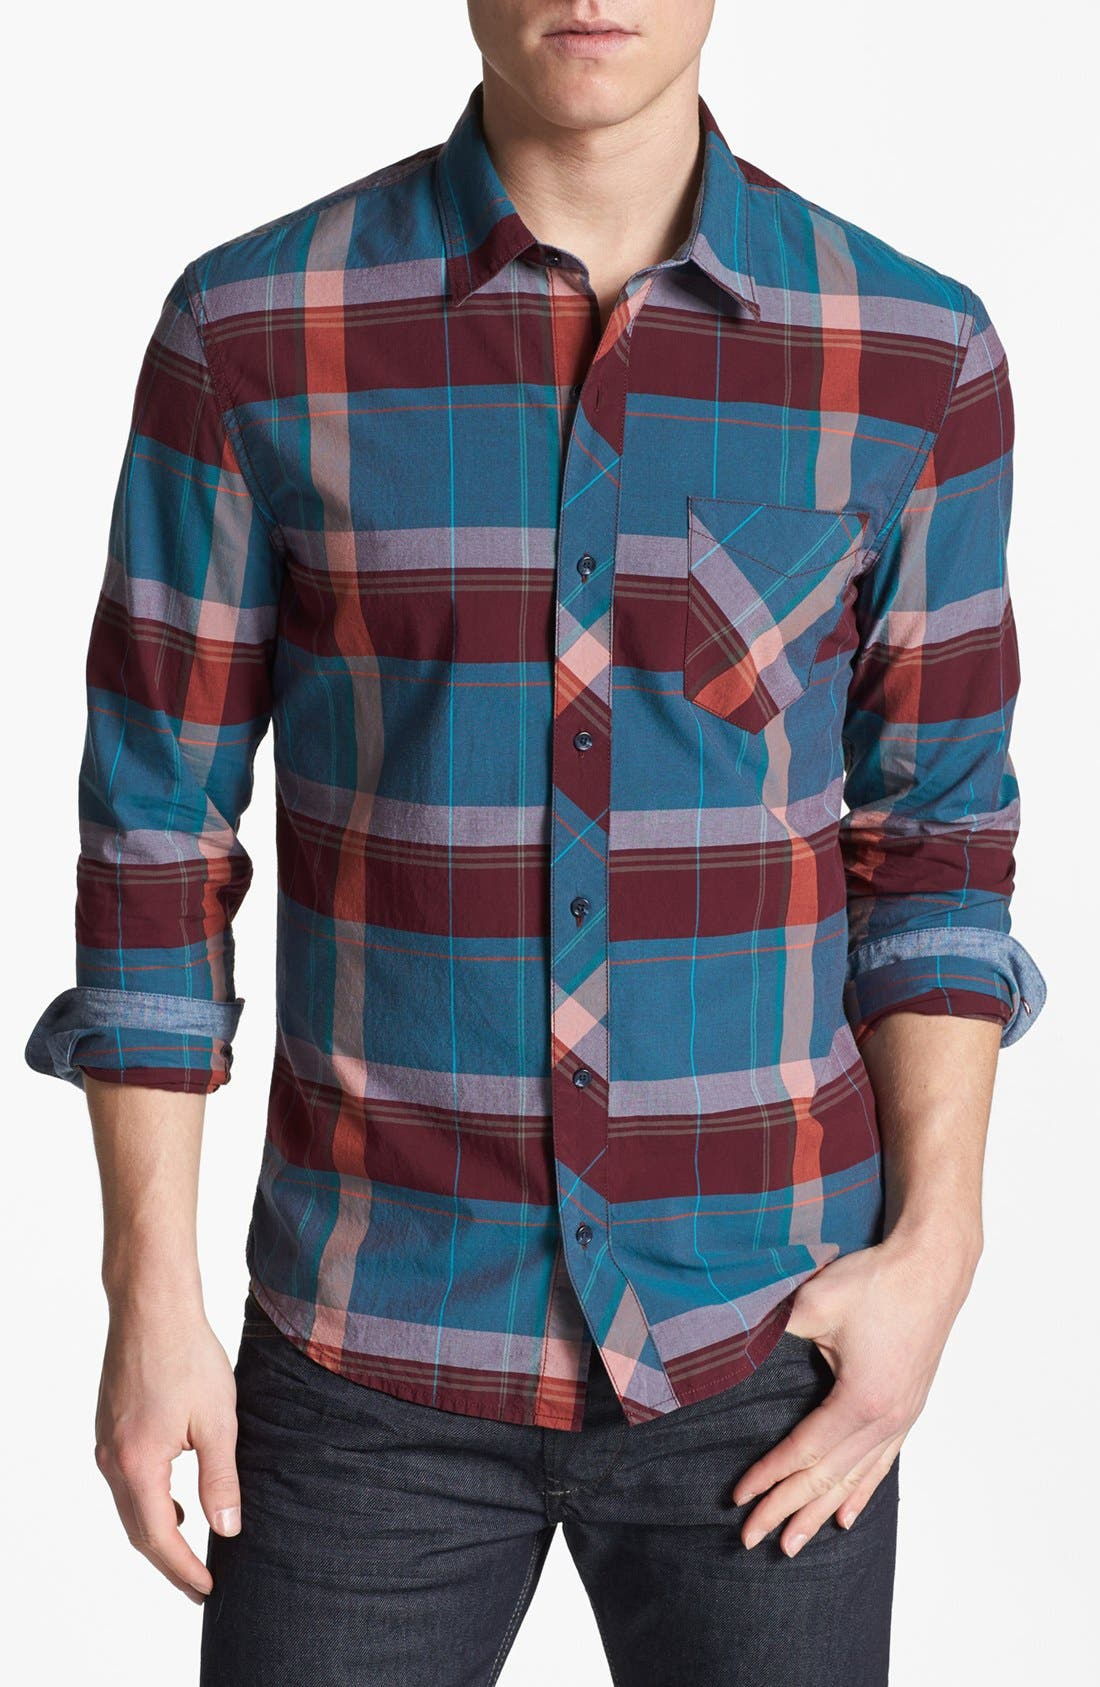 Alternate Image 1 Selected - 1901 Trim Fit Plaid Poplin Shirt